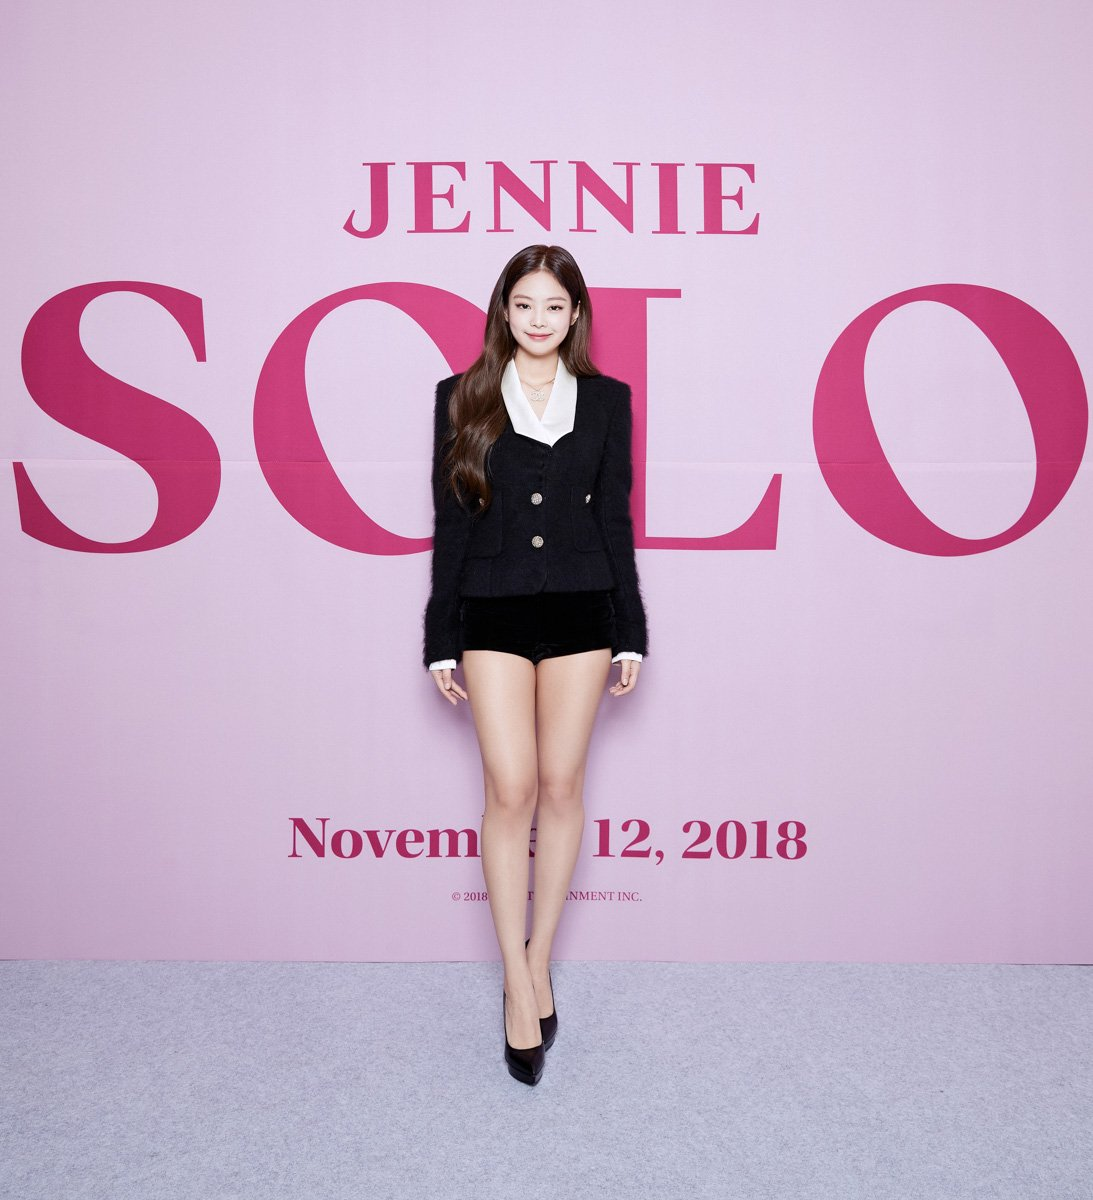 jennie solo showcase debut